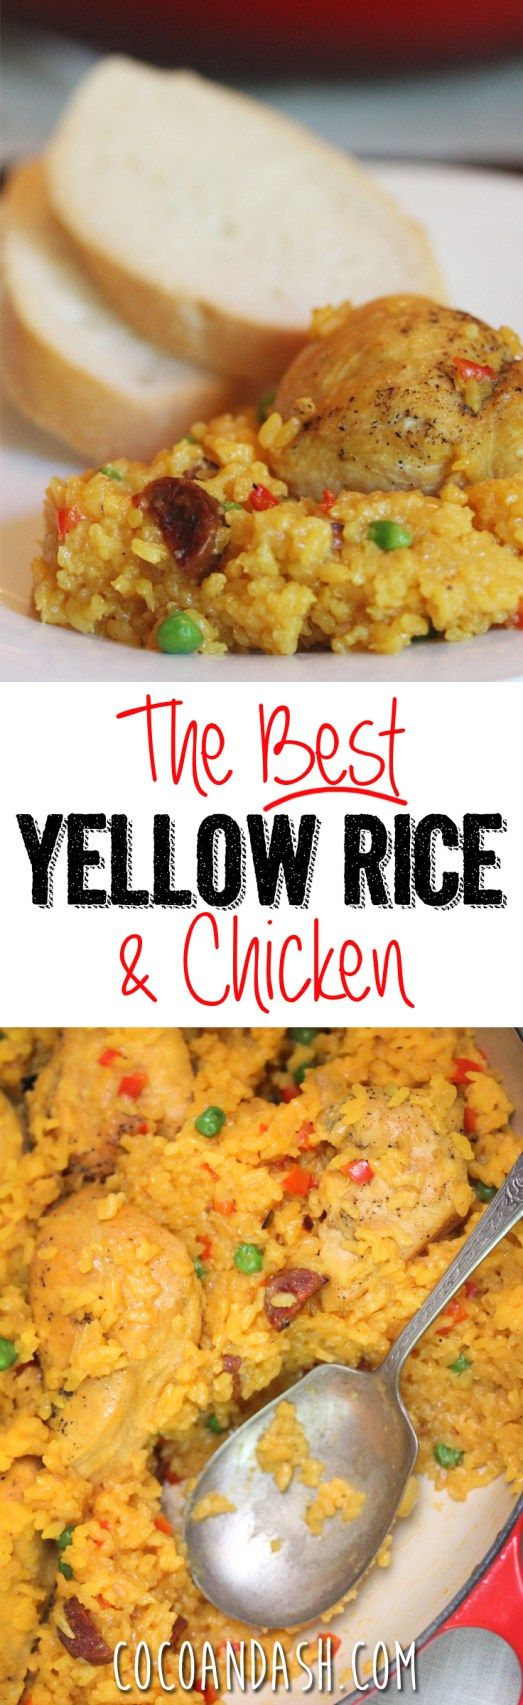 This Yellow Rice Is The Best Yellow Rice Ever!! Authentic Cuban Recipe So